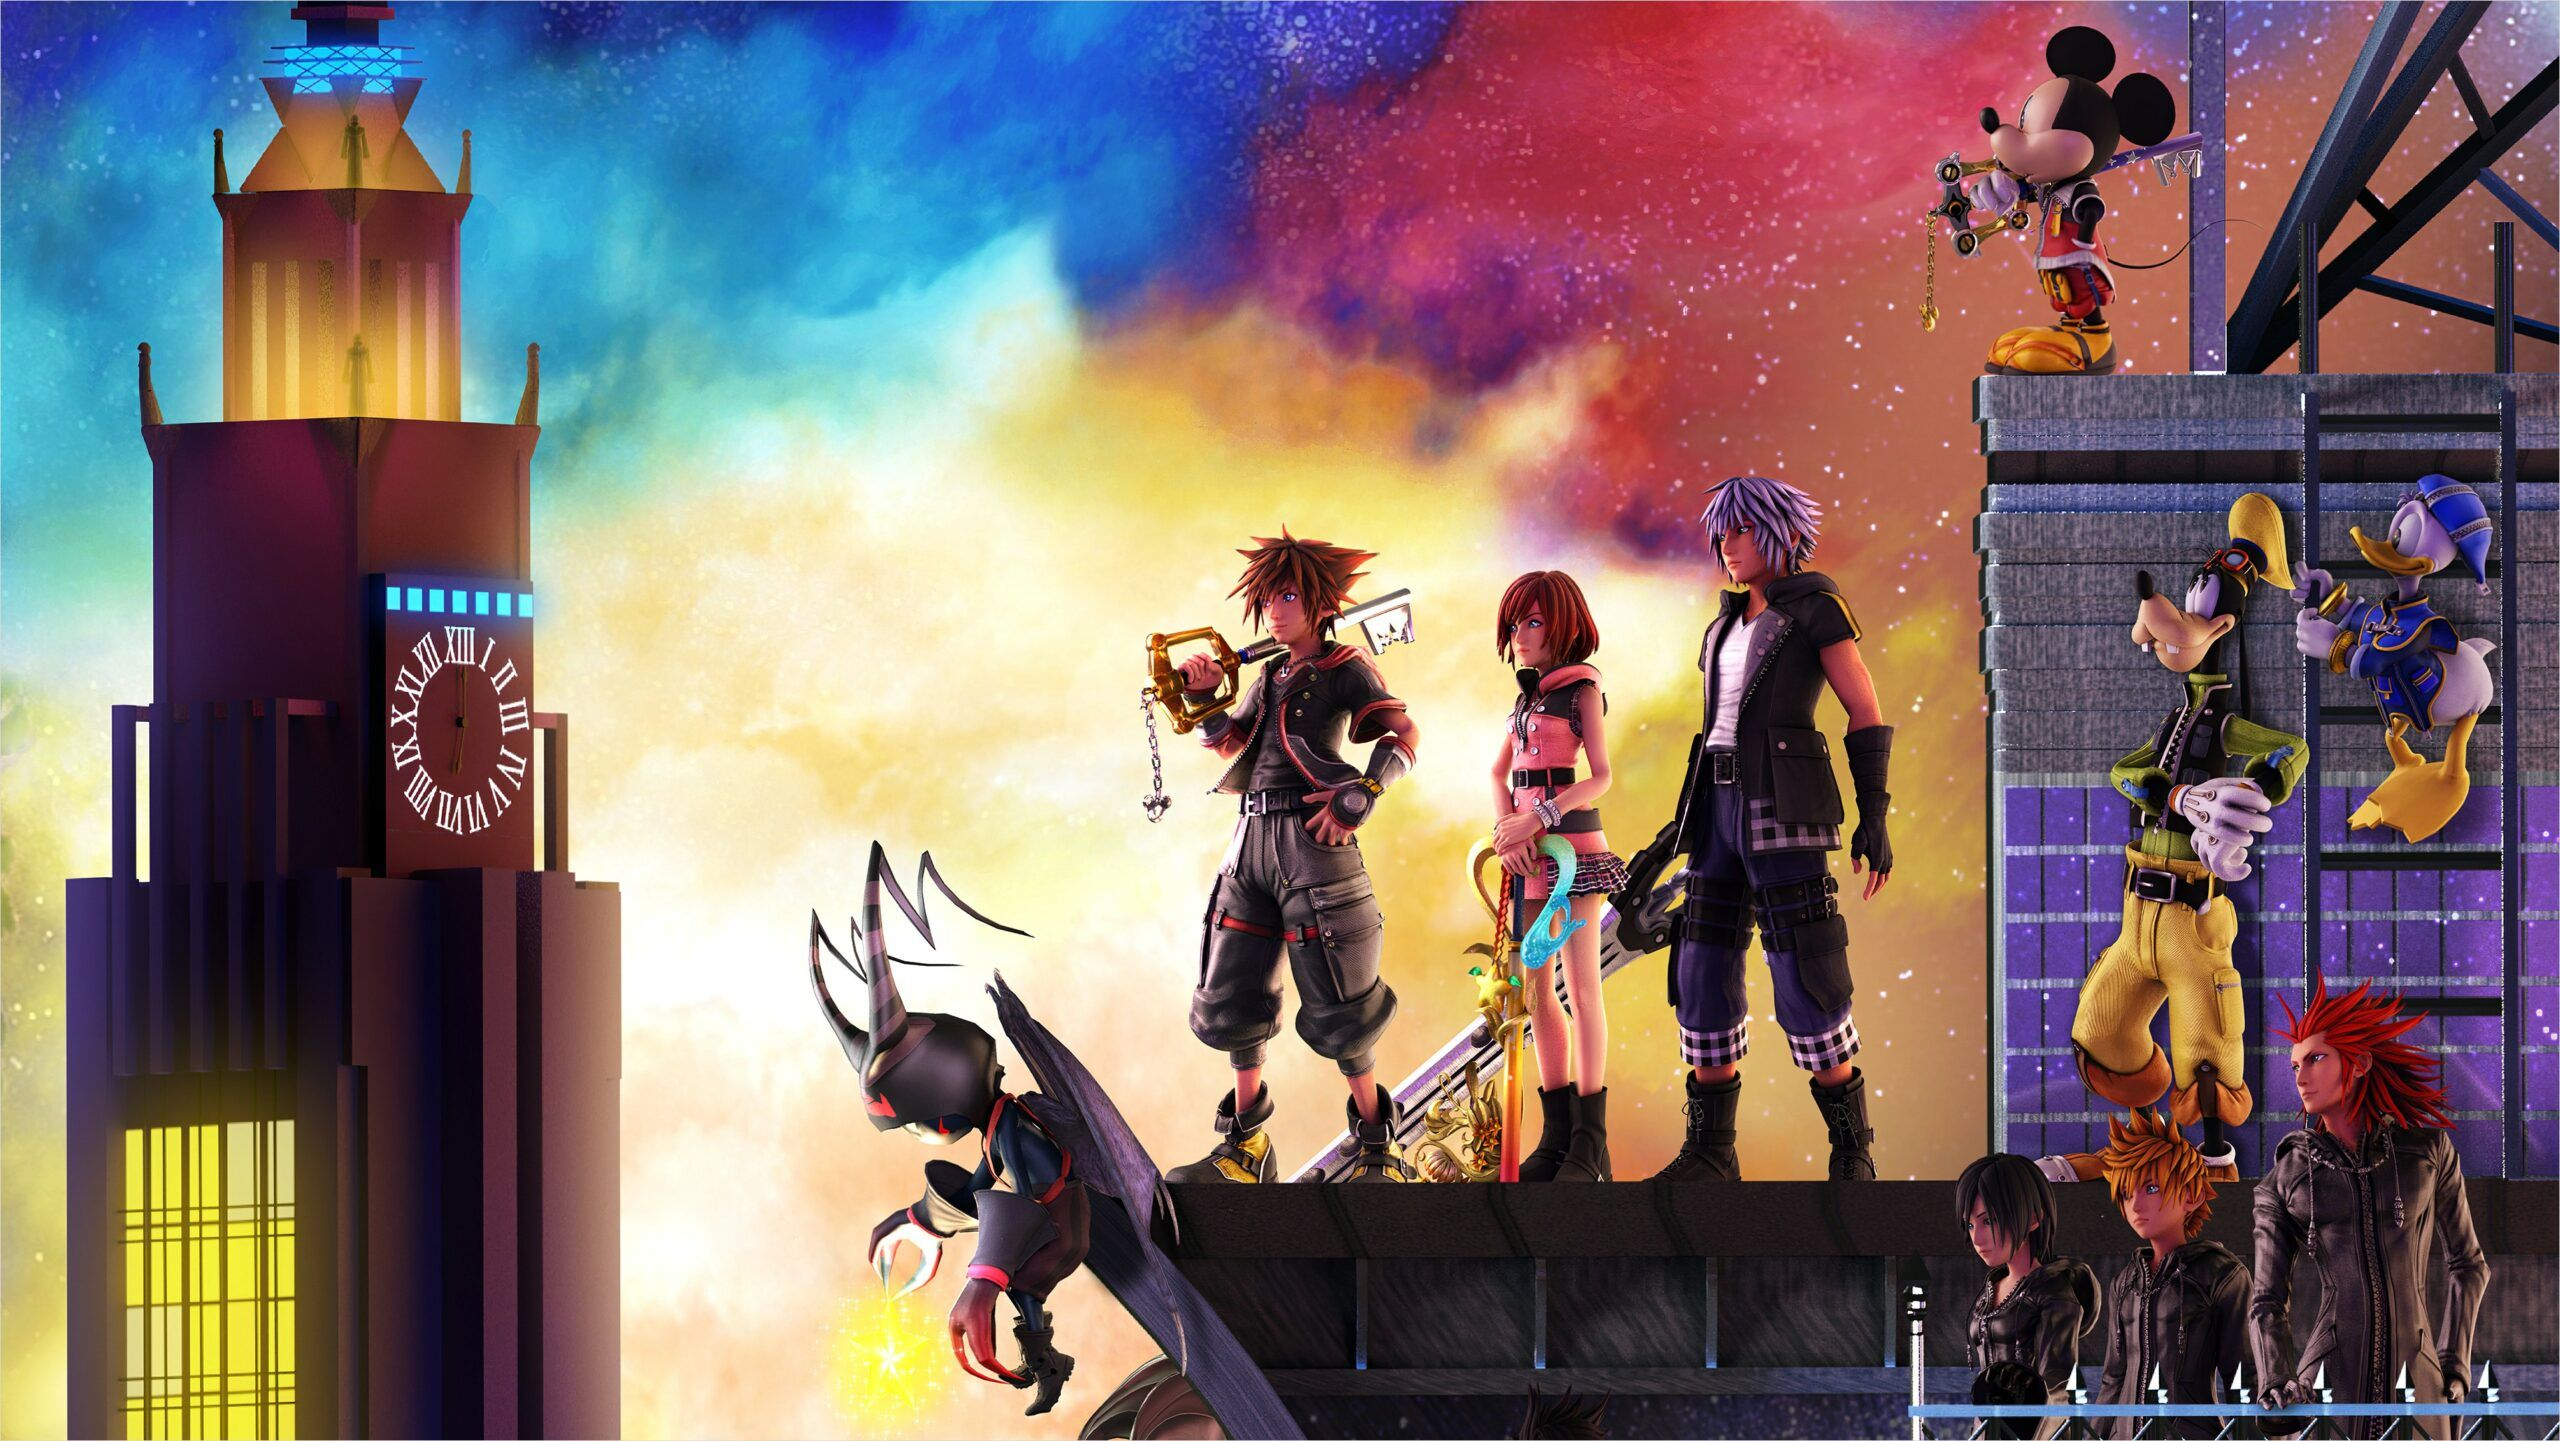 4k Kingdom Hearts Wallpapers In 2020 Kingdom Hearts Wallpaper Kingdom Hearts Kingdom Hearts Funny